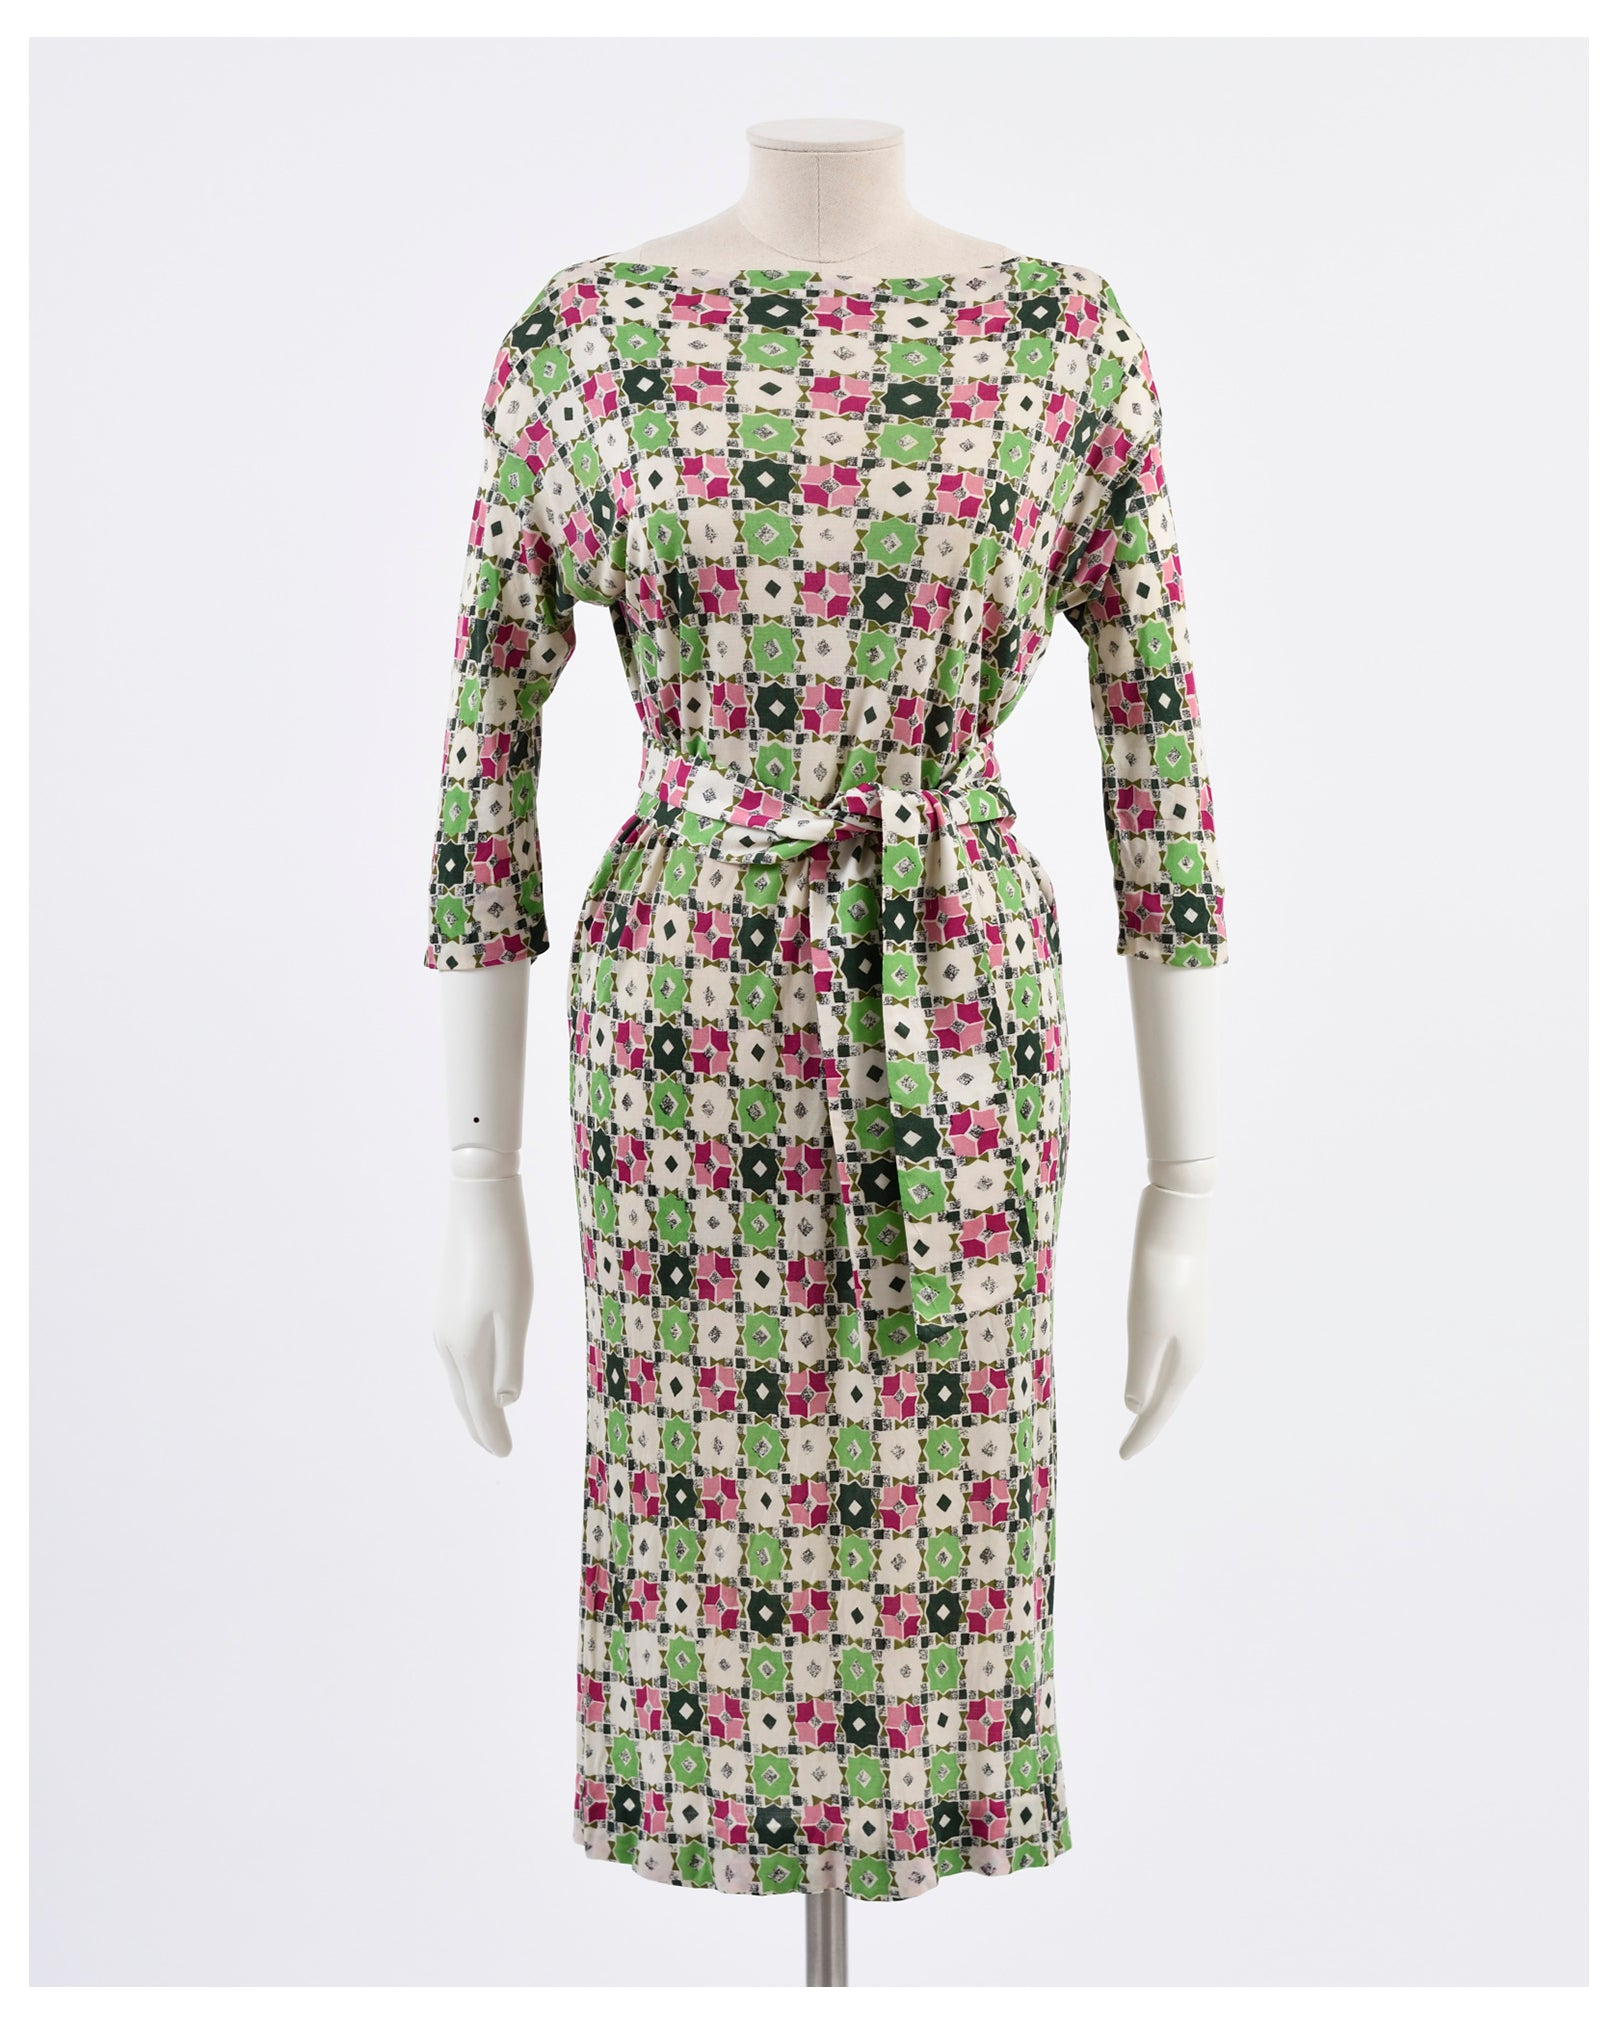 Vintage 1970s Jersey dress from Cavalli e Nastri Milano